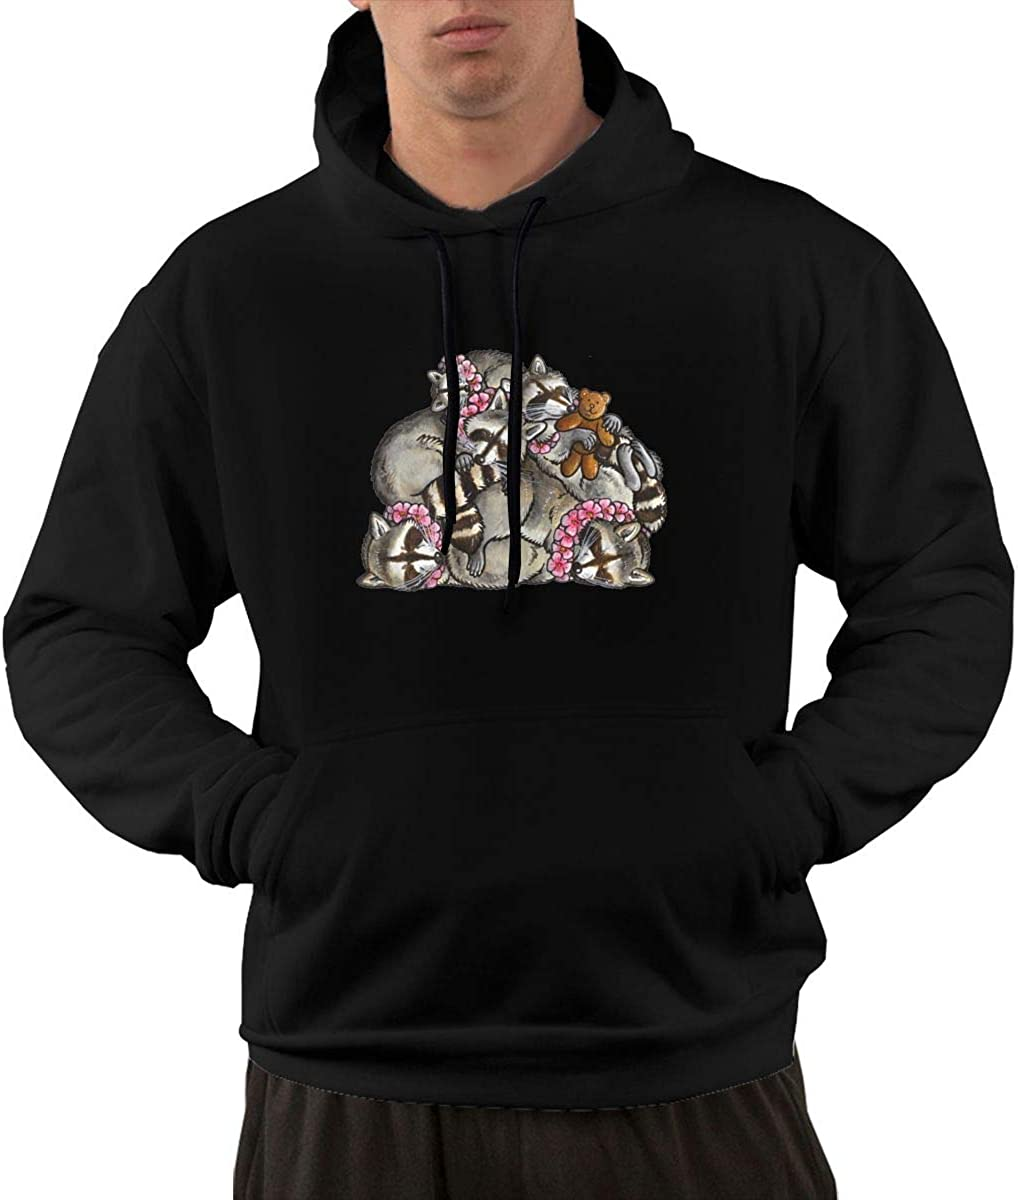 Baby Ying Sleeping Pile of Raccoons Casual Fashion Mens Pocket Hoodie 1